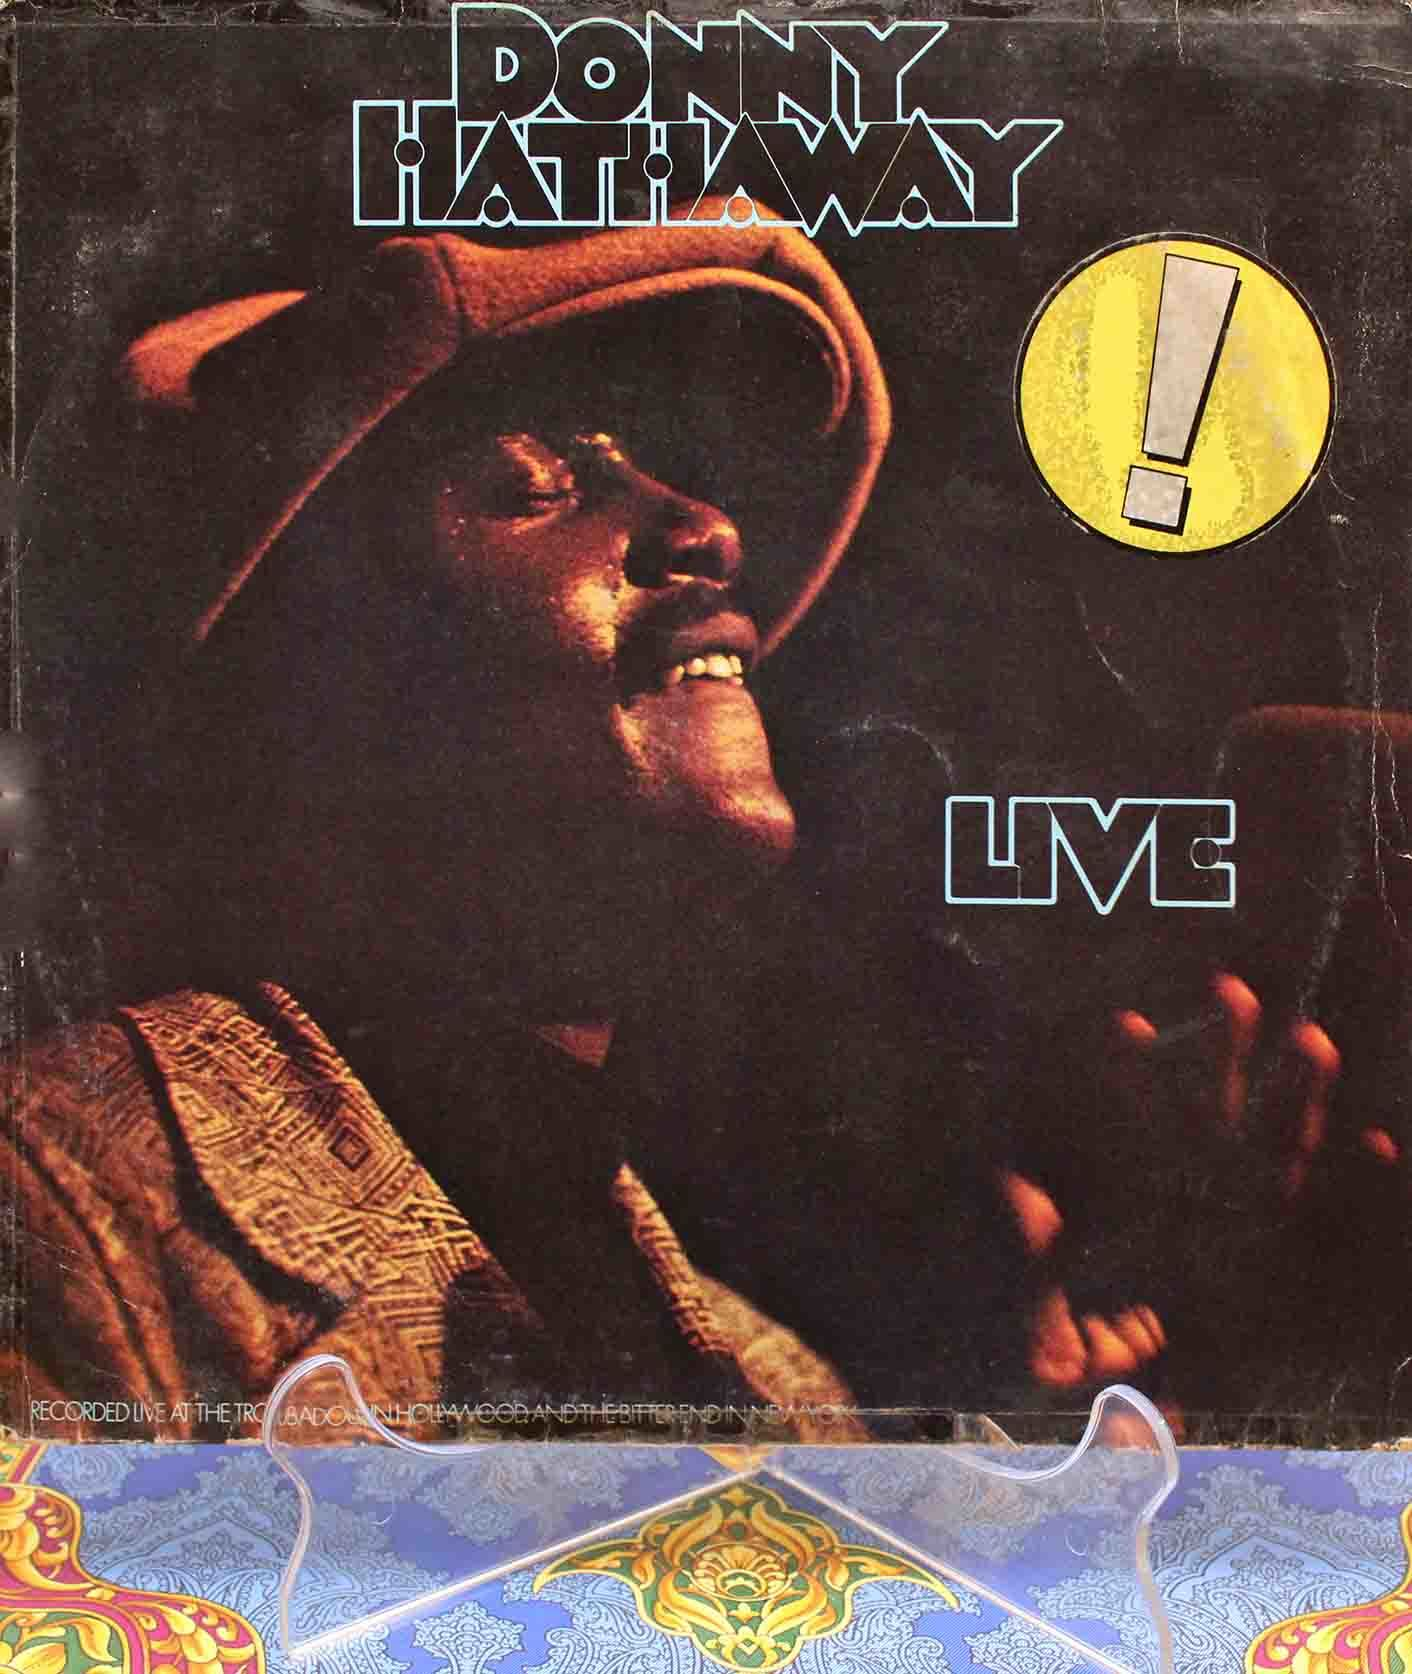 Donny Hathaway live 01